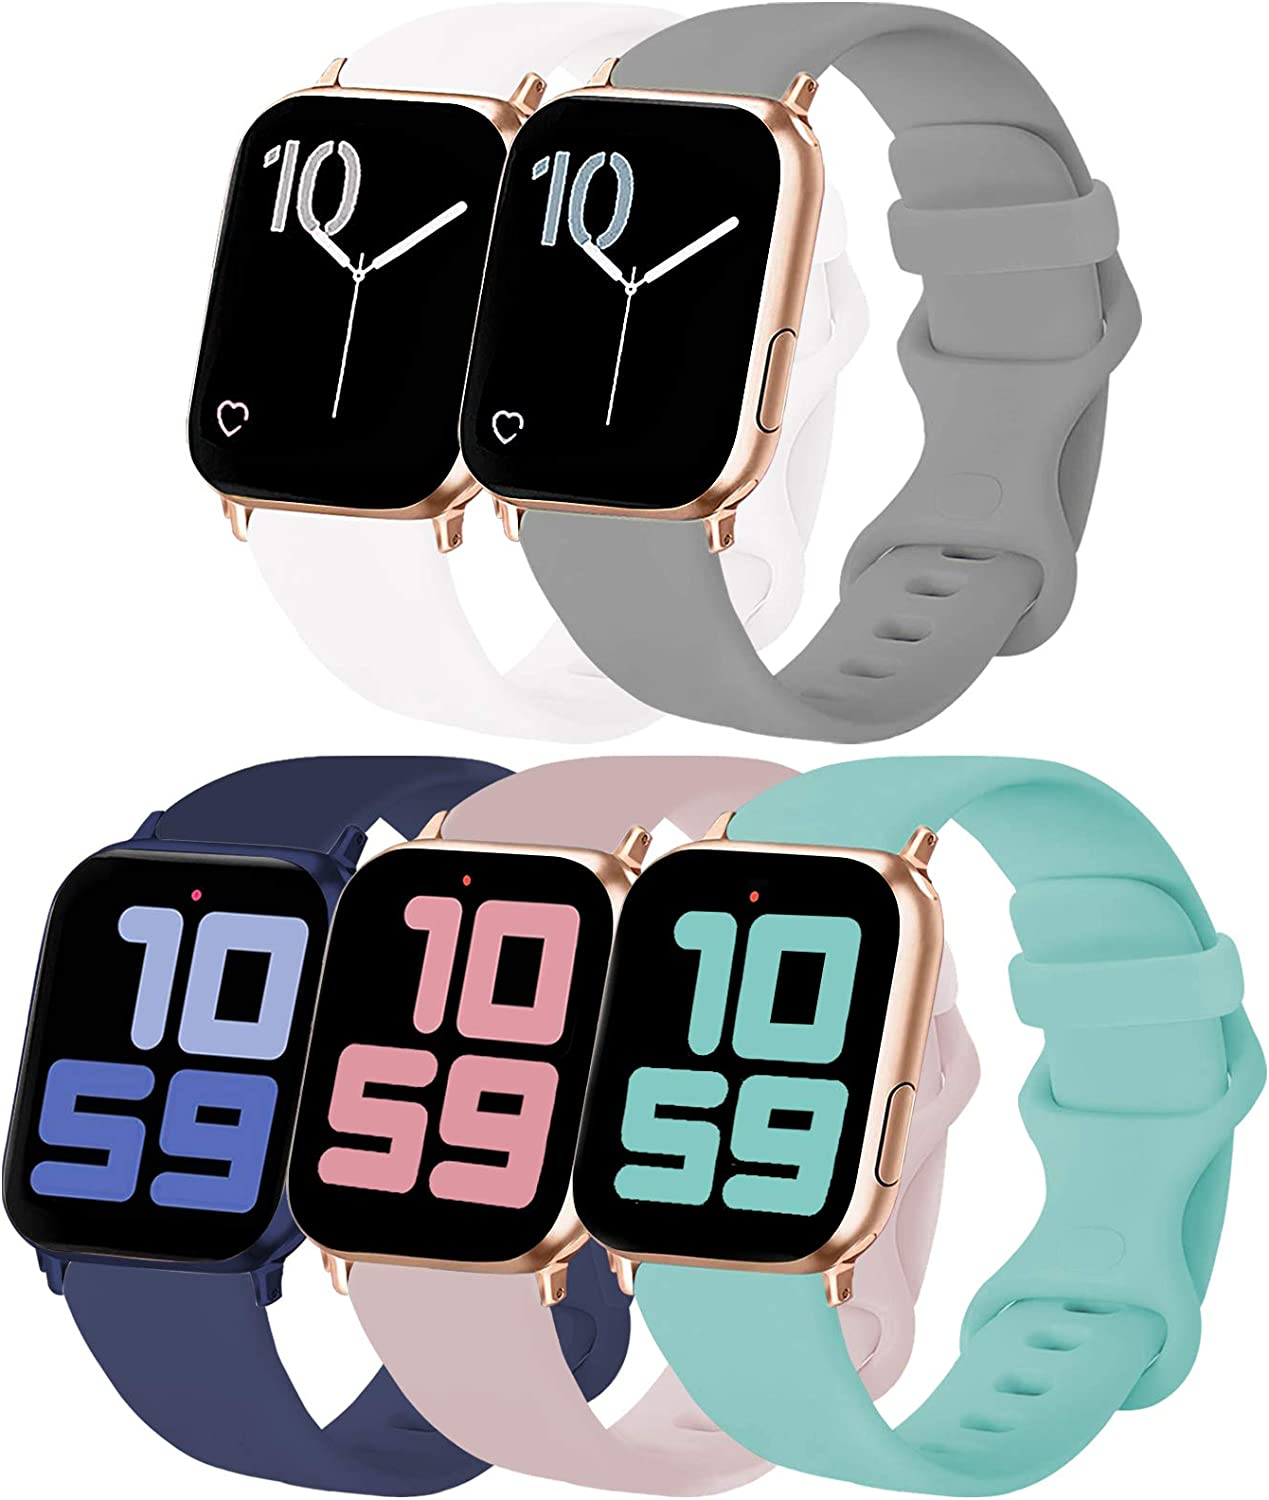 VATI 5-Pack Sport Bands Compatible with Apple Watch Band 40MM 44MM 38MM 42MM, Soft Silicone Watchbands Replacement Strap Compatible for Apple Watch Series SE/6/5/4/3/2/1 All Versions